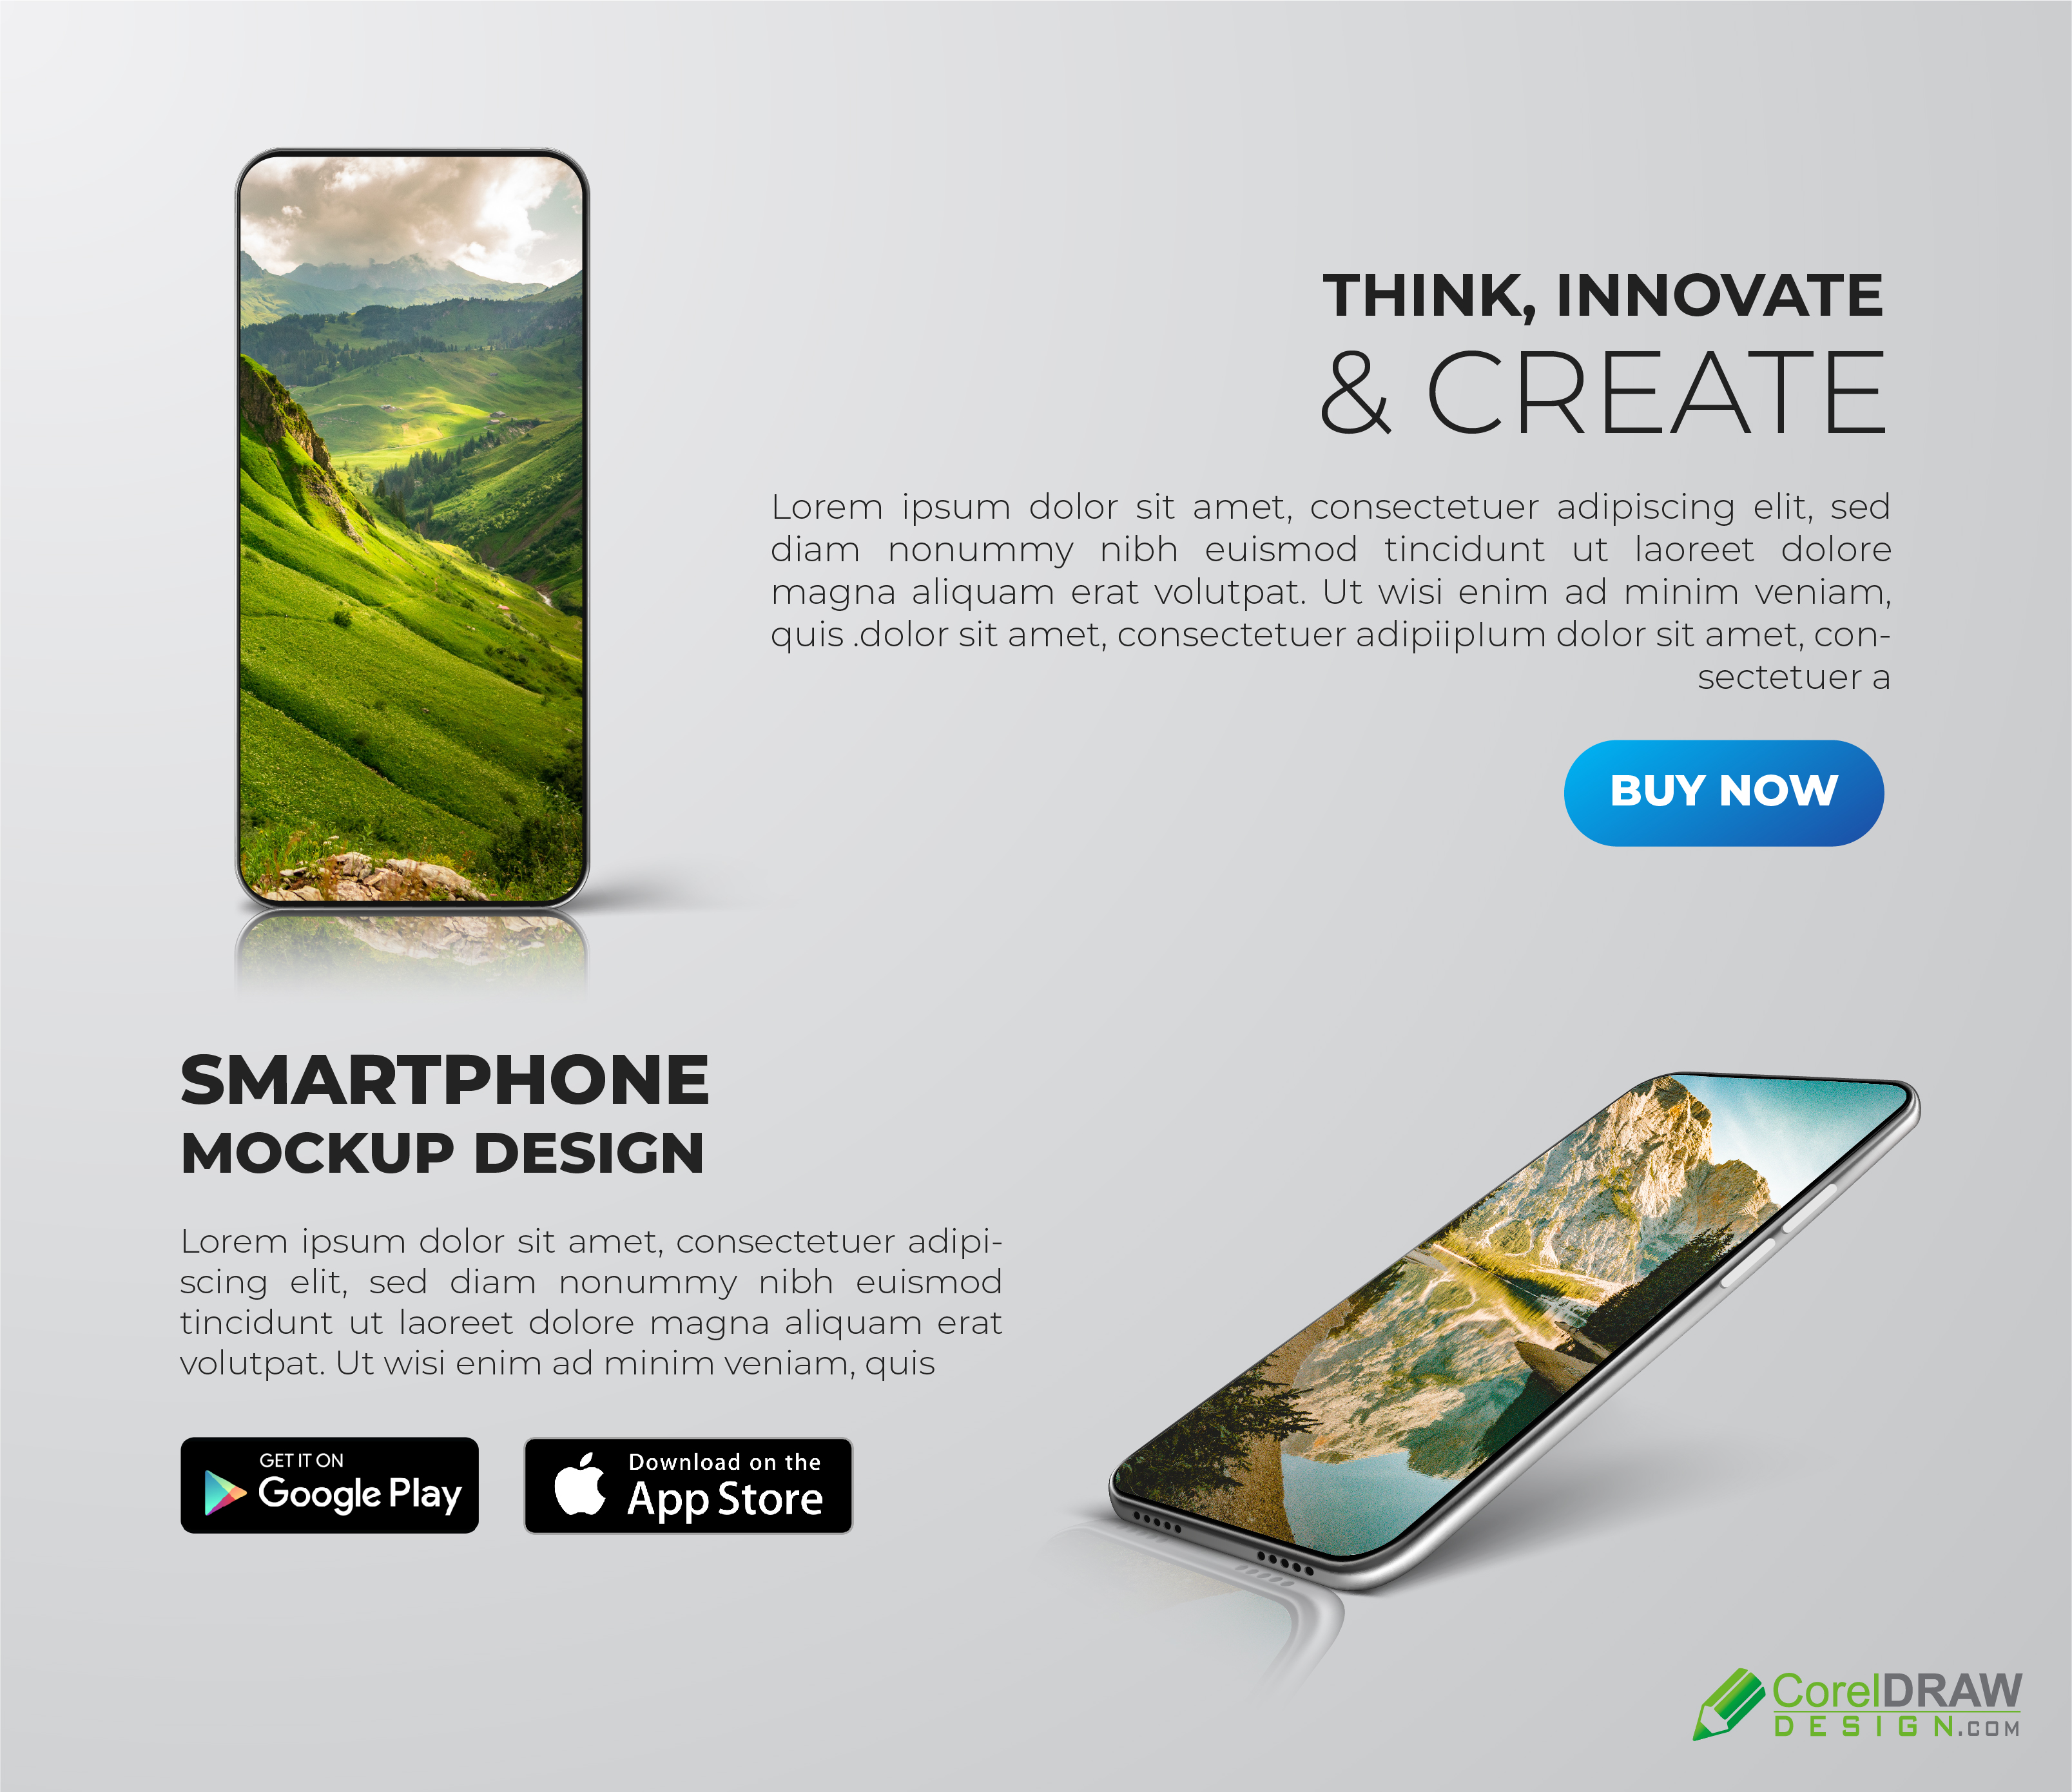 Corporate Android ios Mobile Phone Presentation Banner Advertisement Poster